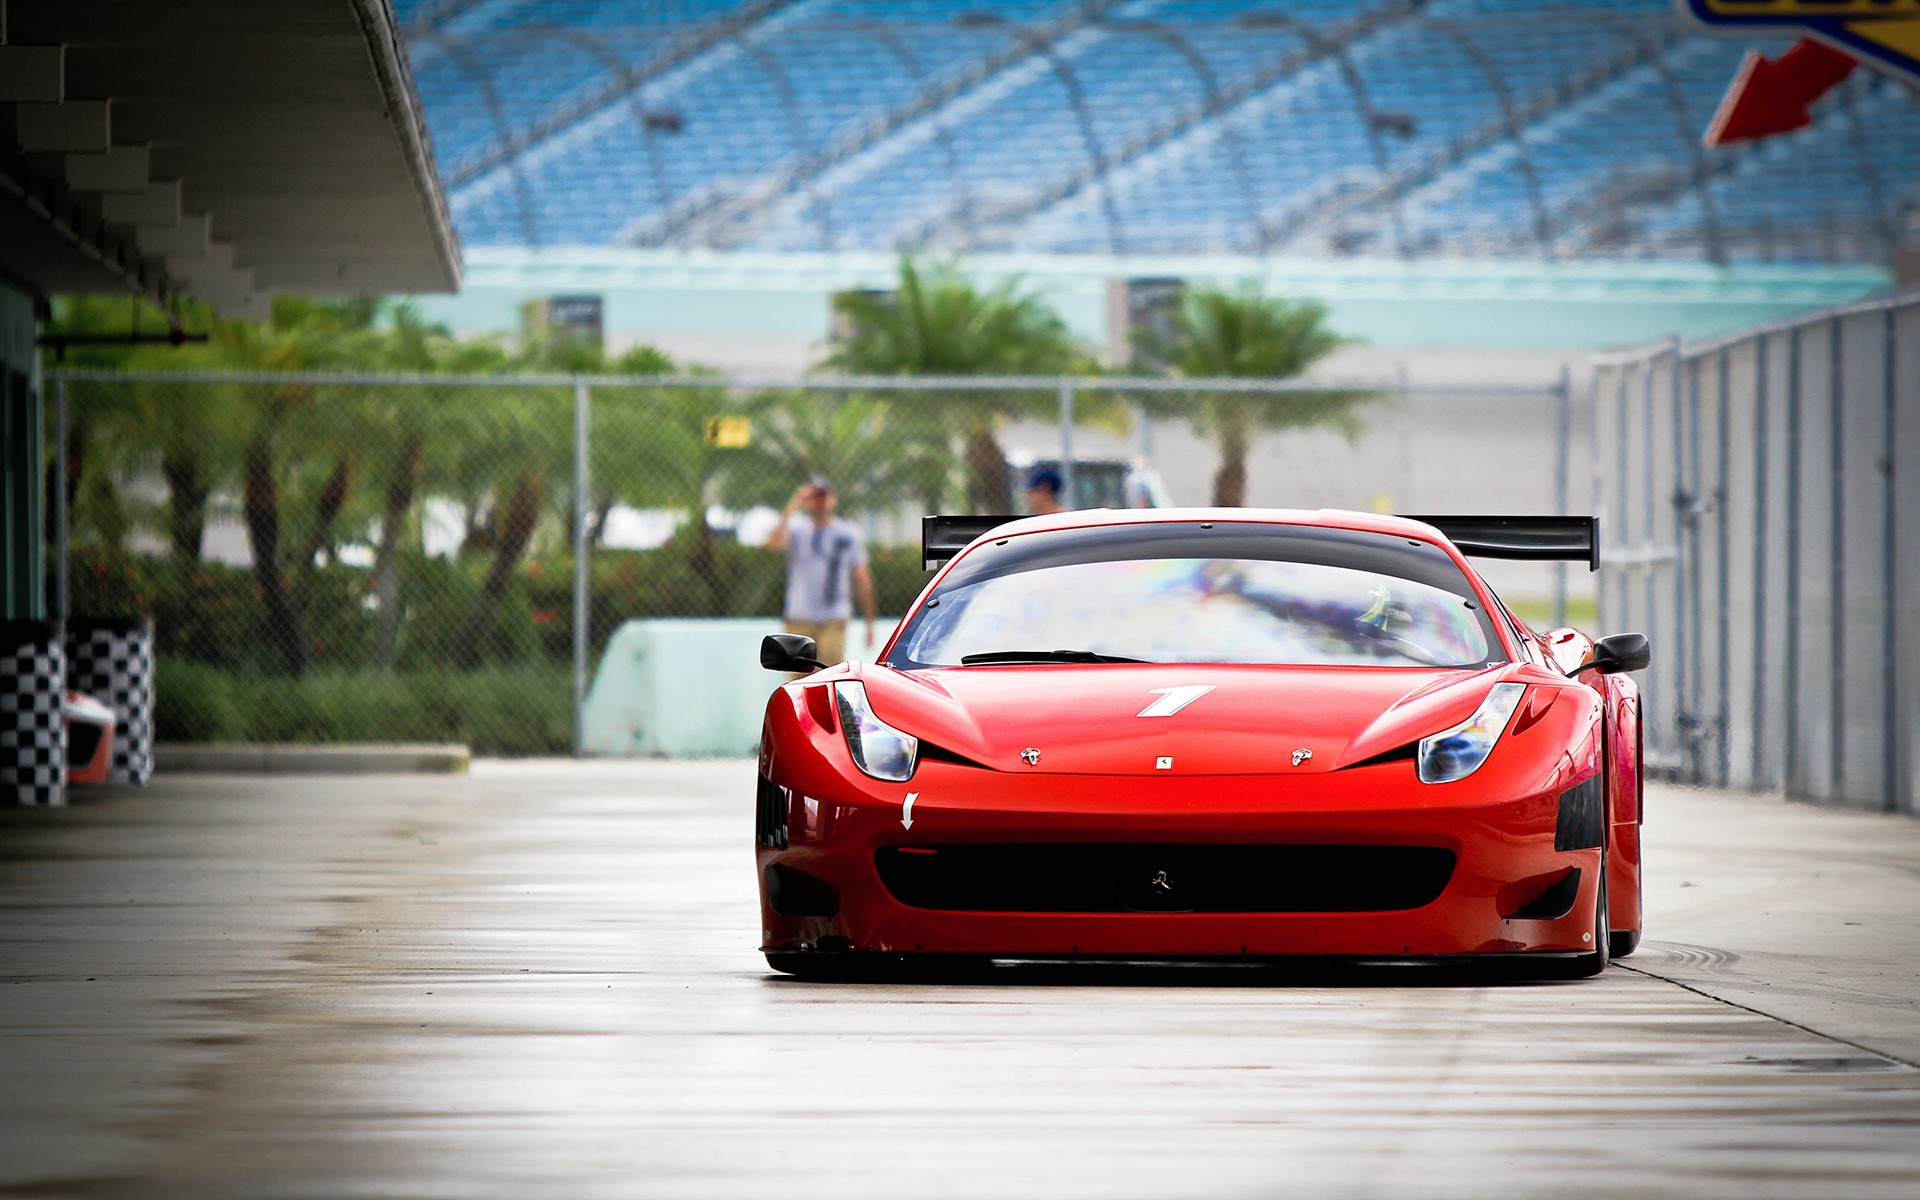 Car Auction Sites >> Daily Wallpaper: Ferrari 458 Italia GT3 | I Like To Waste My Time